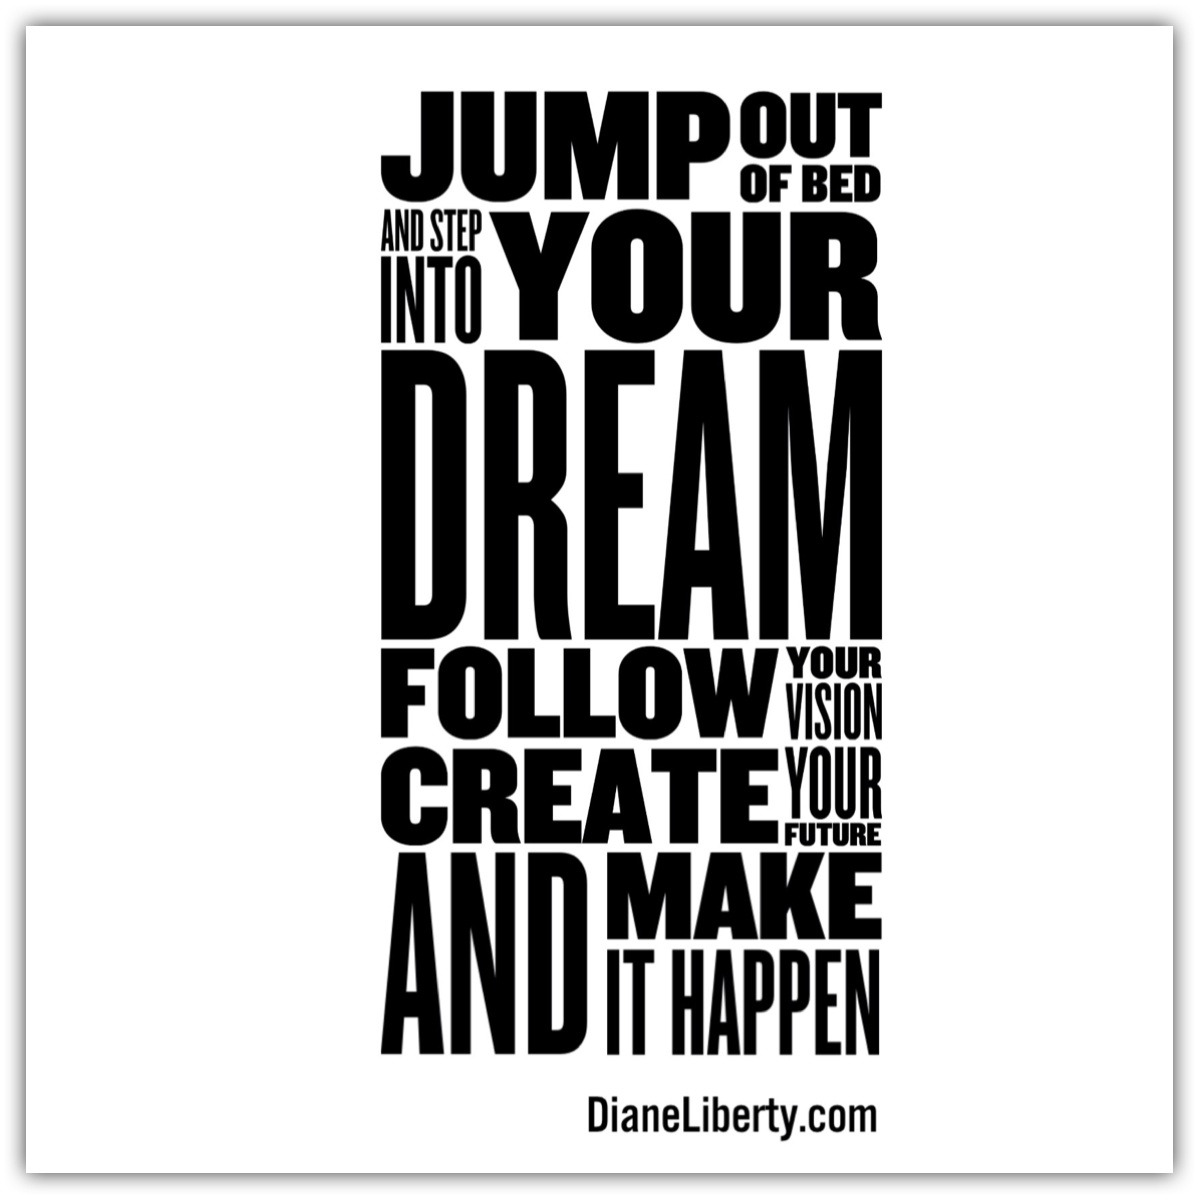 Jump Out Of Bed...And Make It Happen